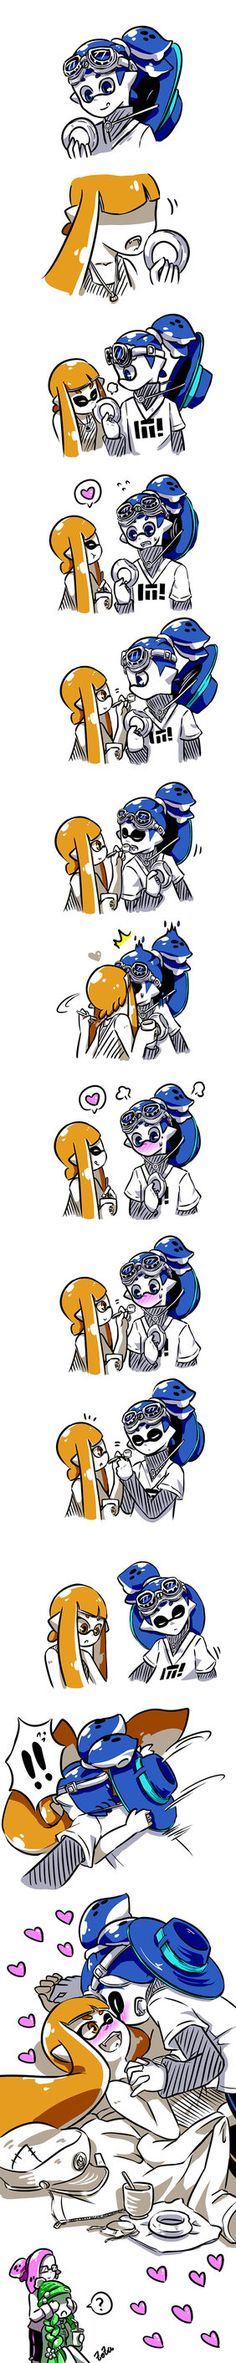 [Splatoon] Pudding and Donut little comic 2 by zzoza